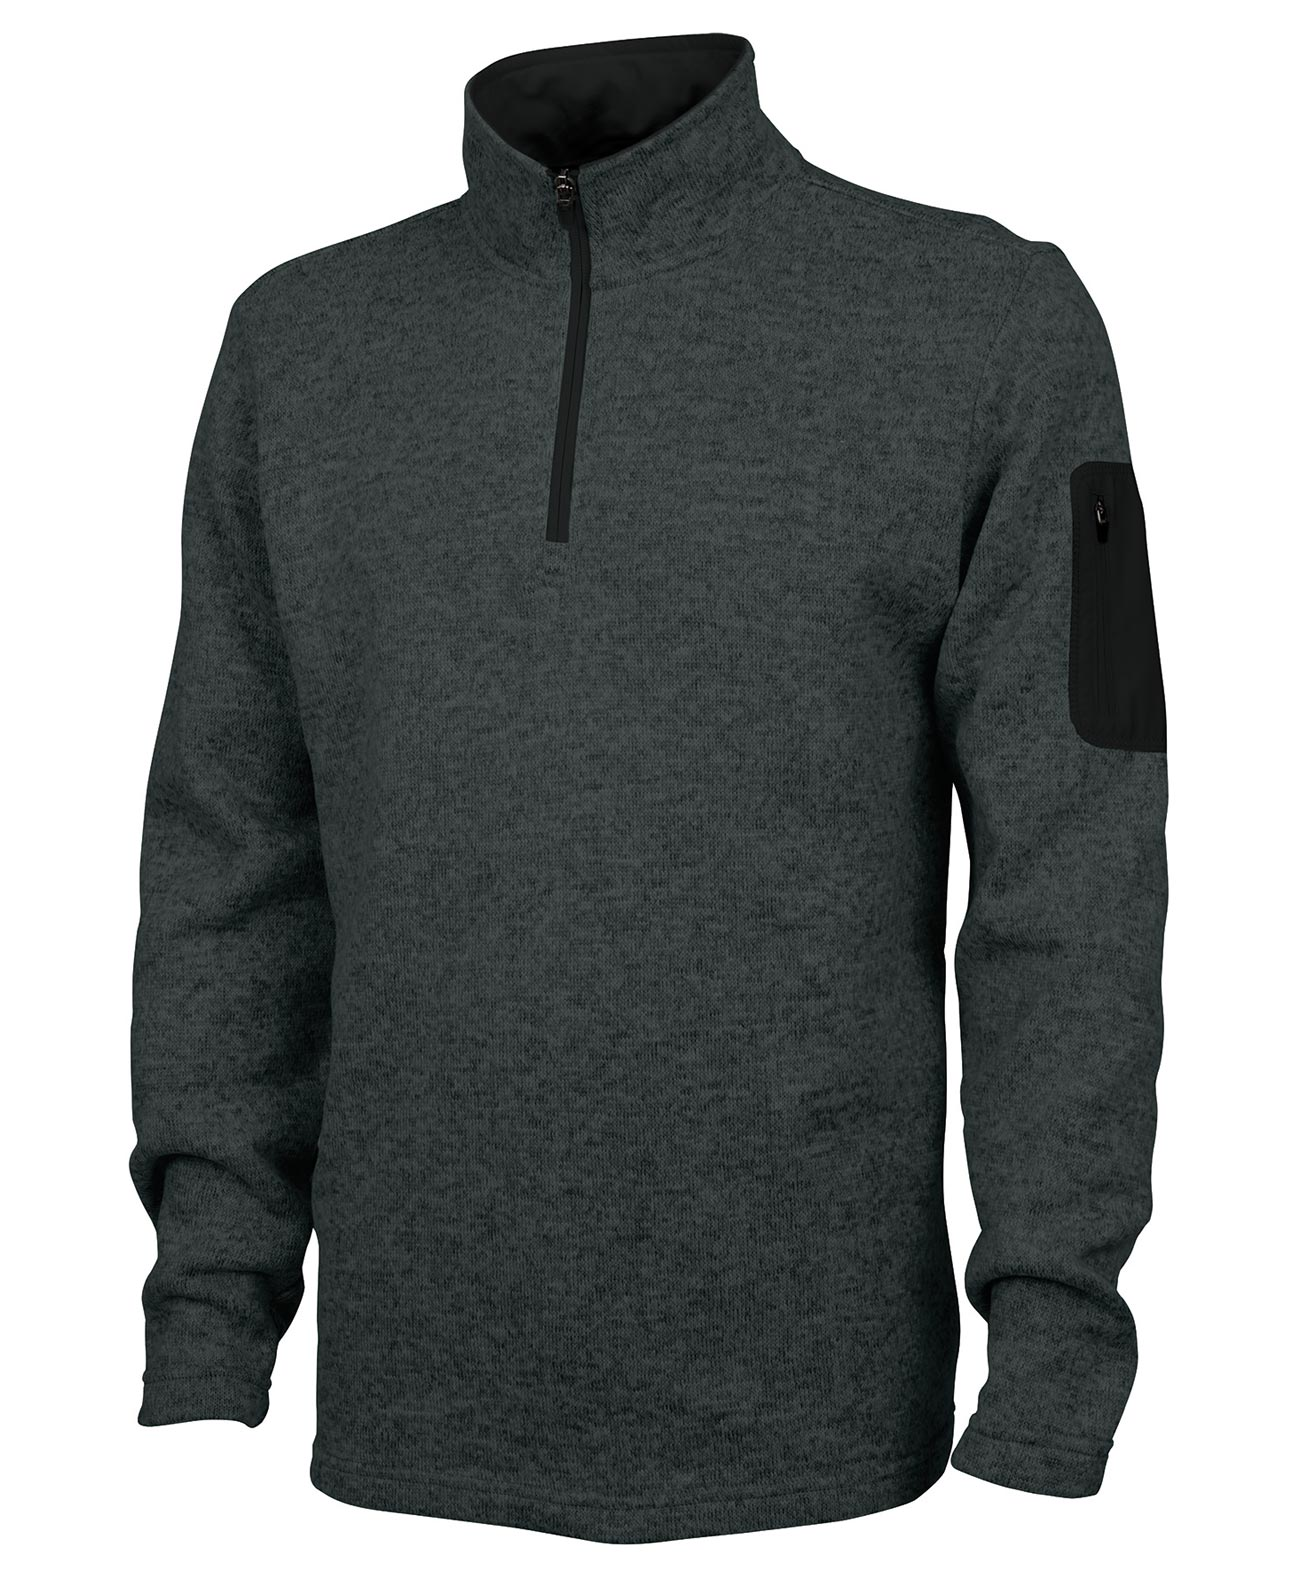 Mens Soft Heathered Fleece Pullover By Charles River Apparel